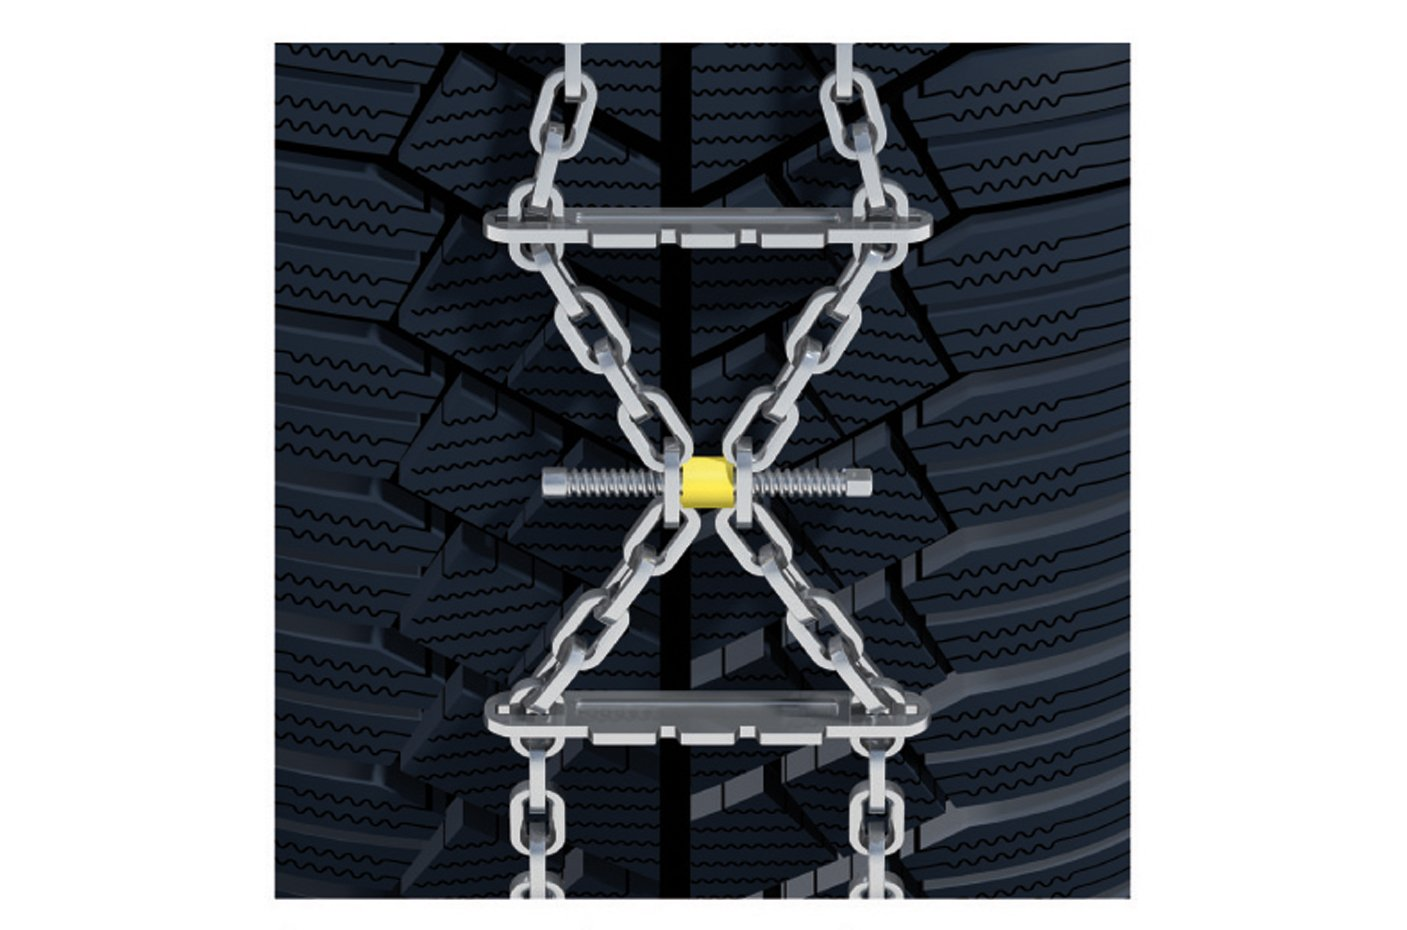 set of 2 K/ÖNIG K-SUMMIT XXL K77 Snow chains